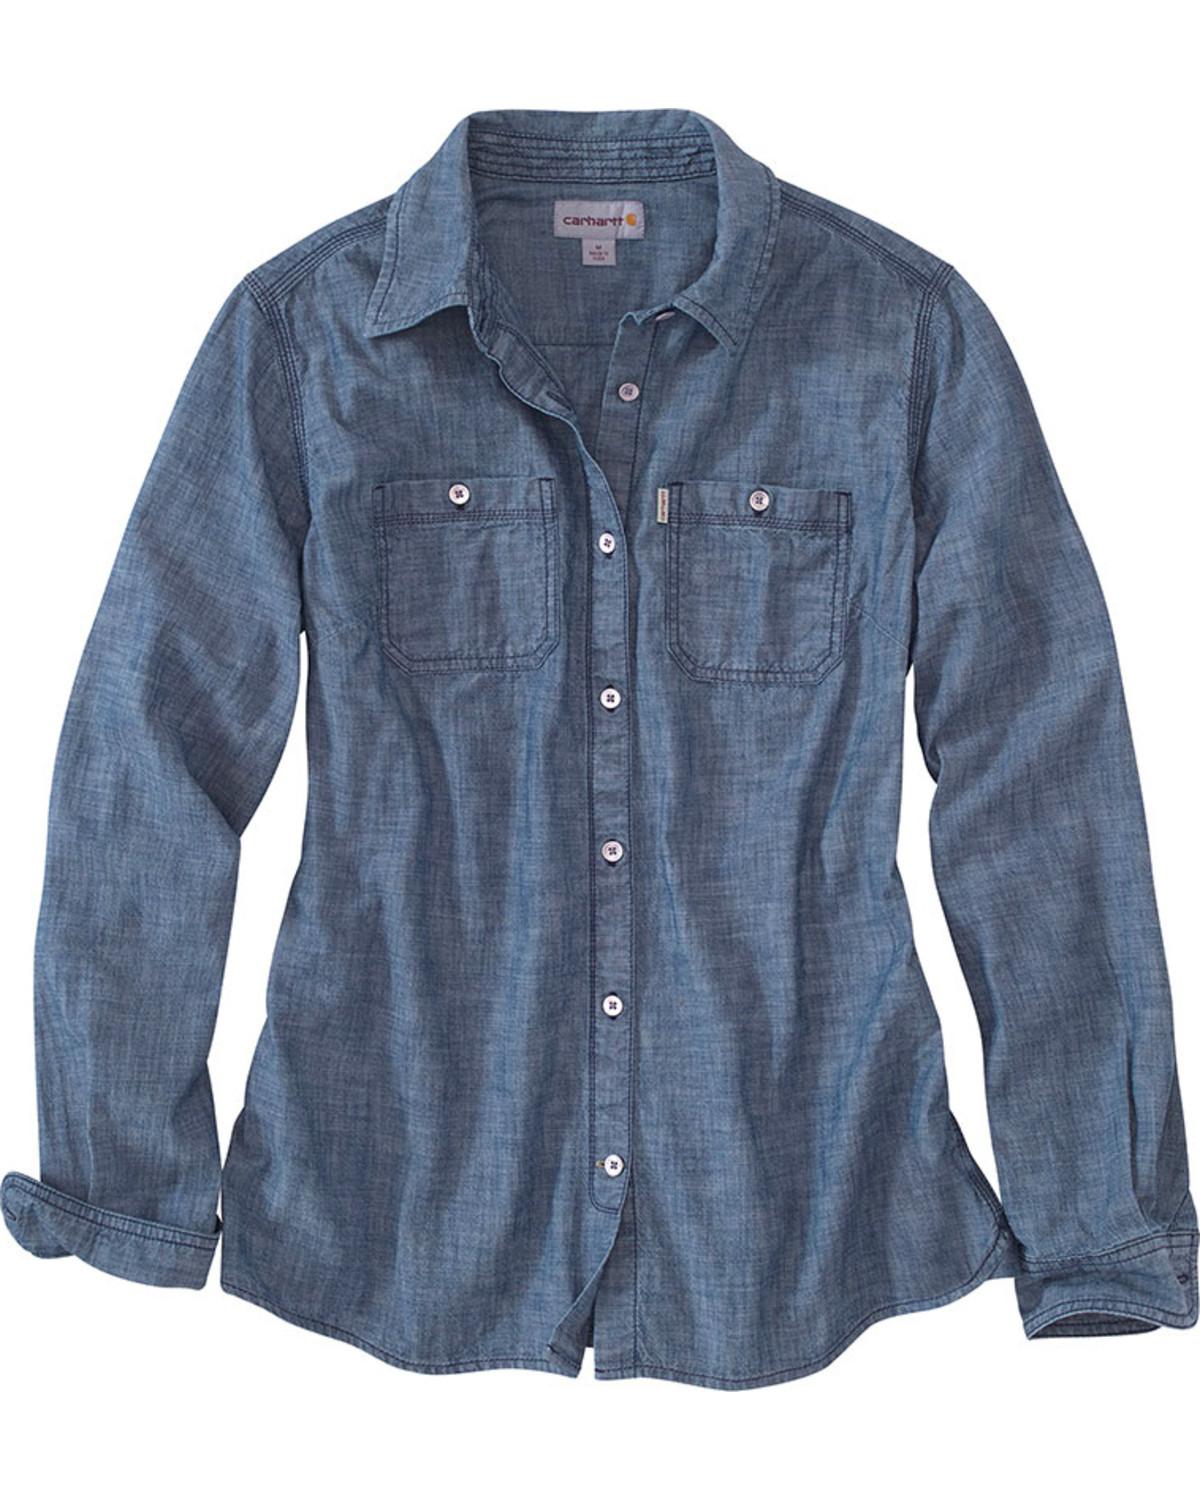 Carhartt women 39 s milam long sleeve chambray shirt boot barn for Chambray 7 s